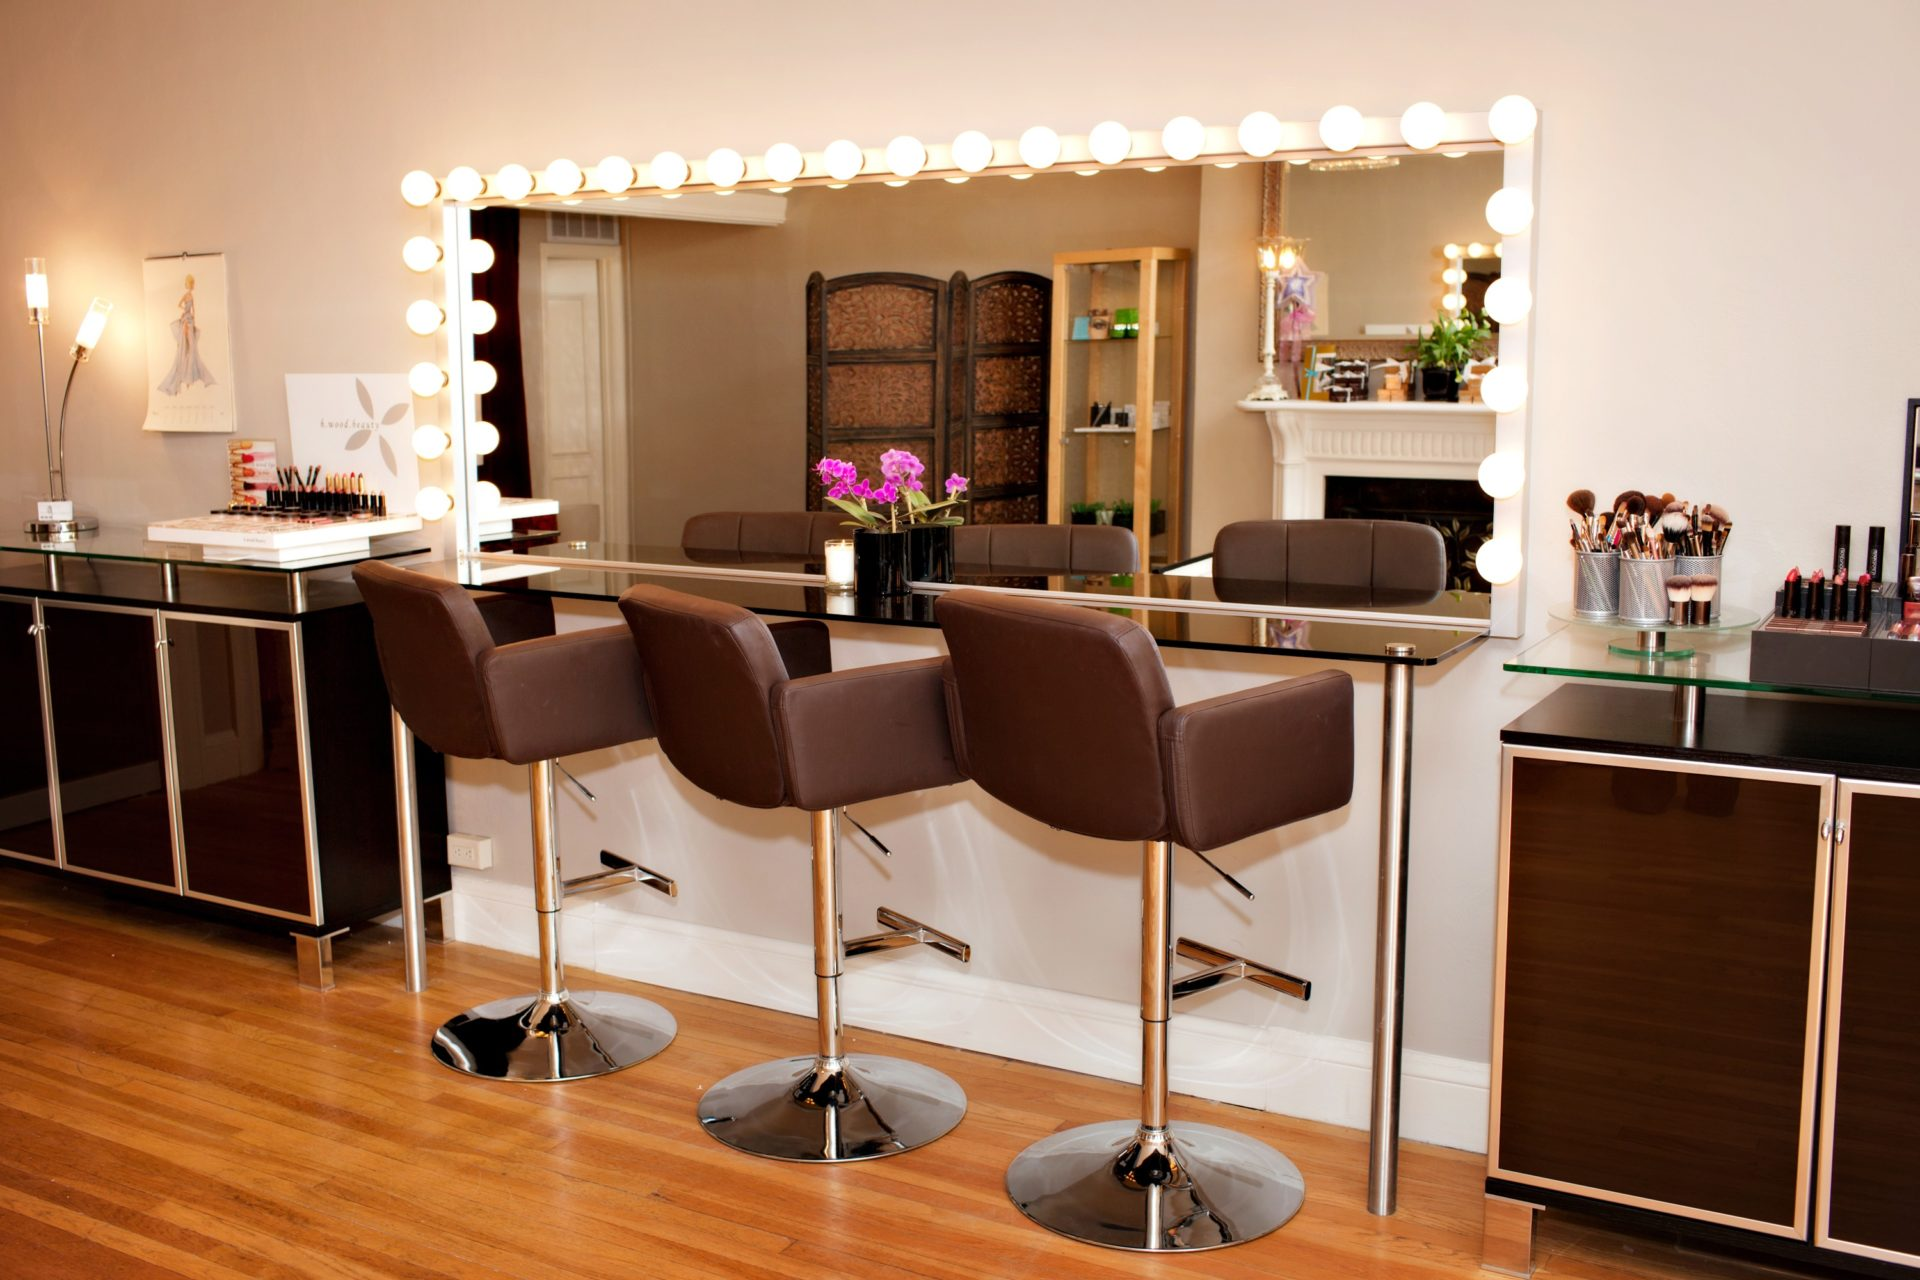 A Hidden Favorite: A look at Caravan Stylist Studios